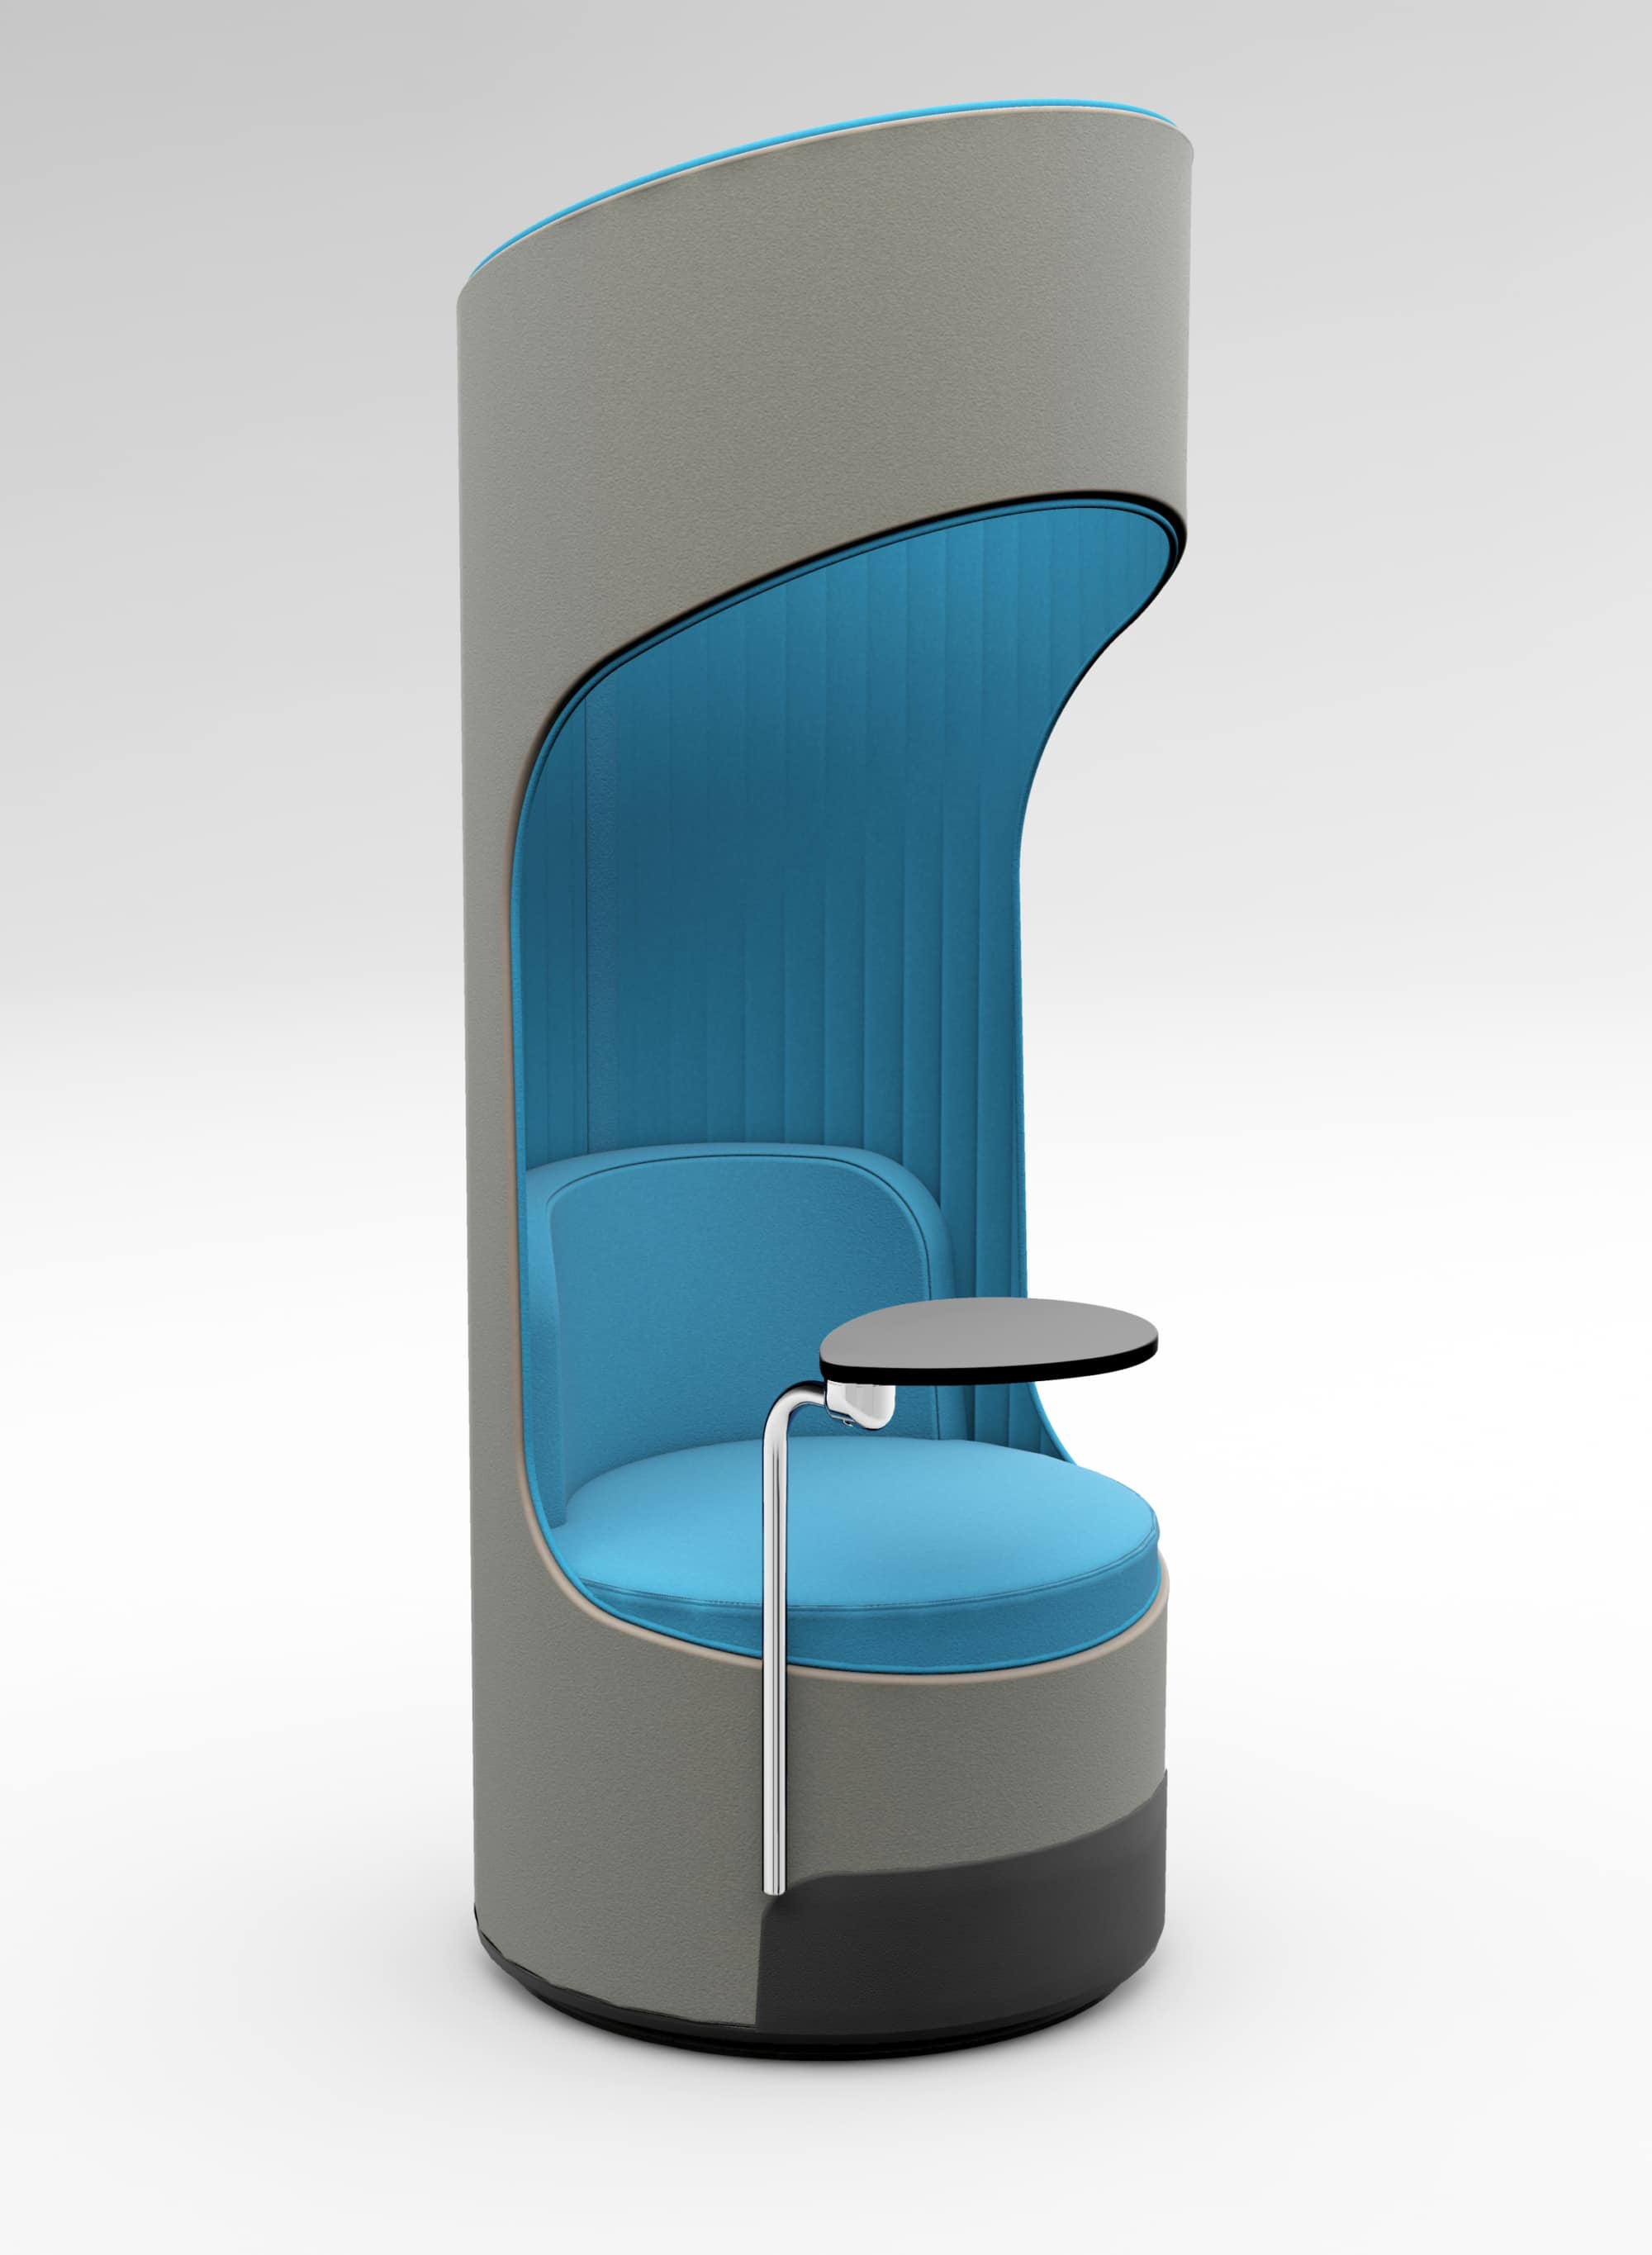 Cega Modern Acoustic Seating Collaborative Office Interiors